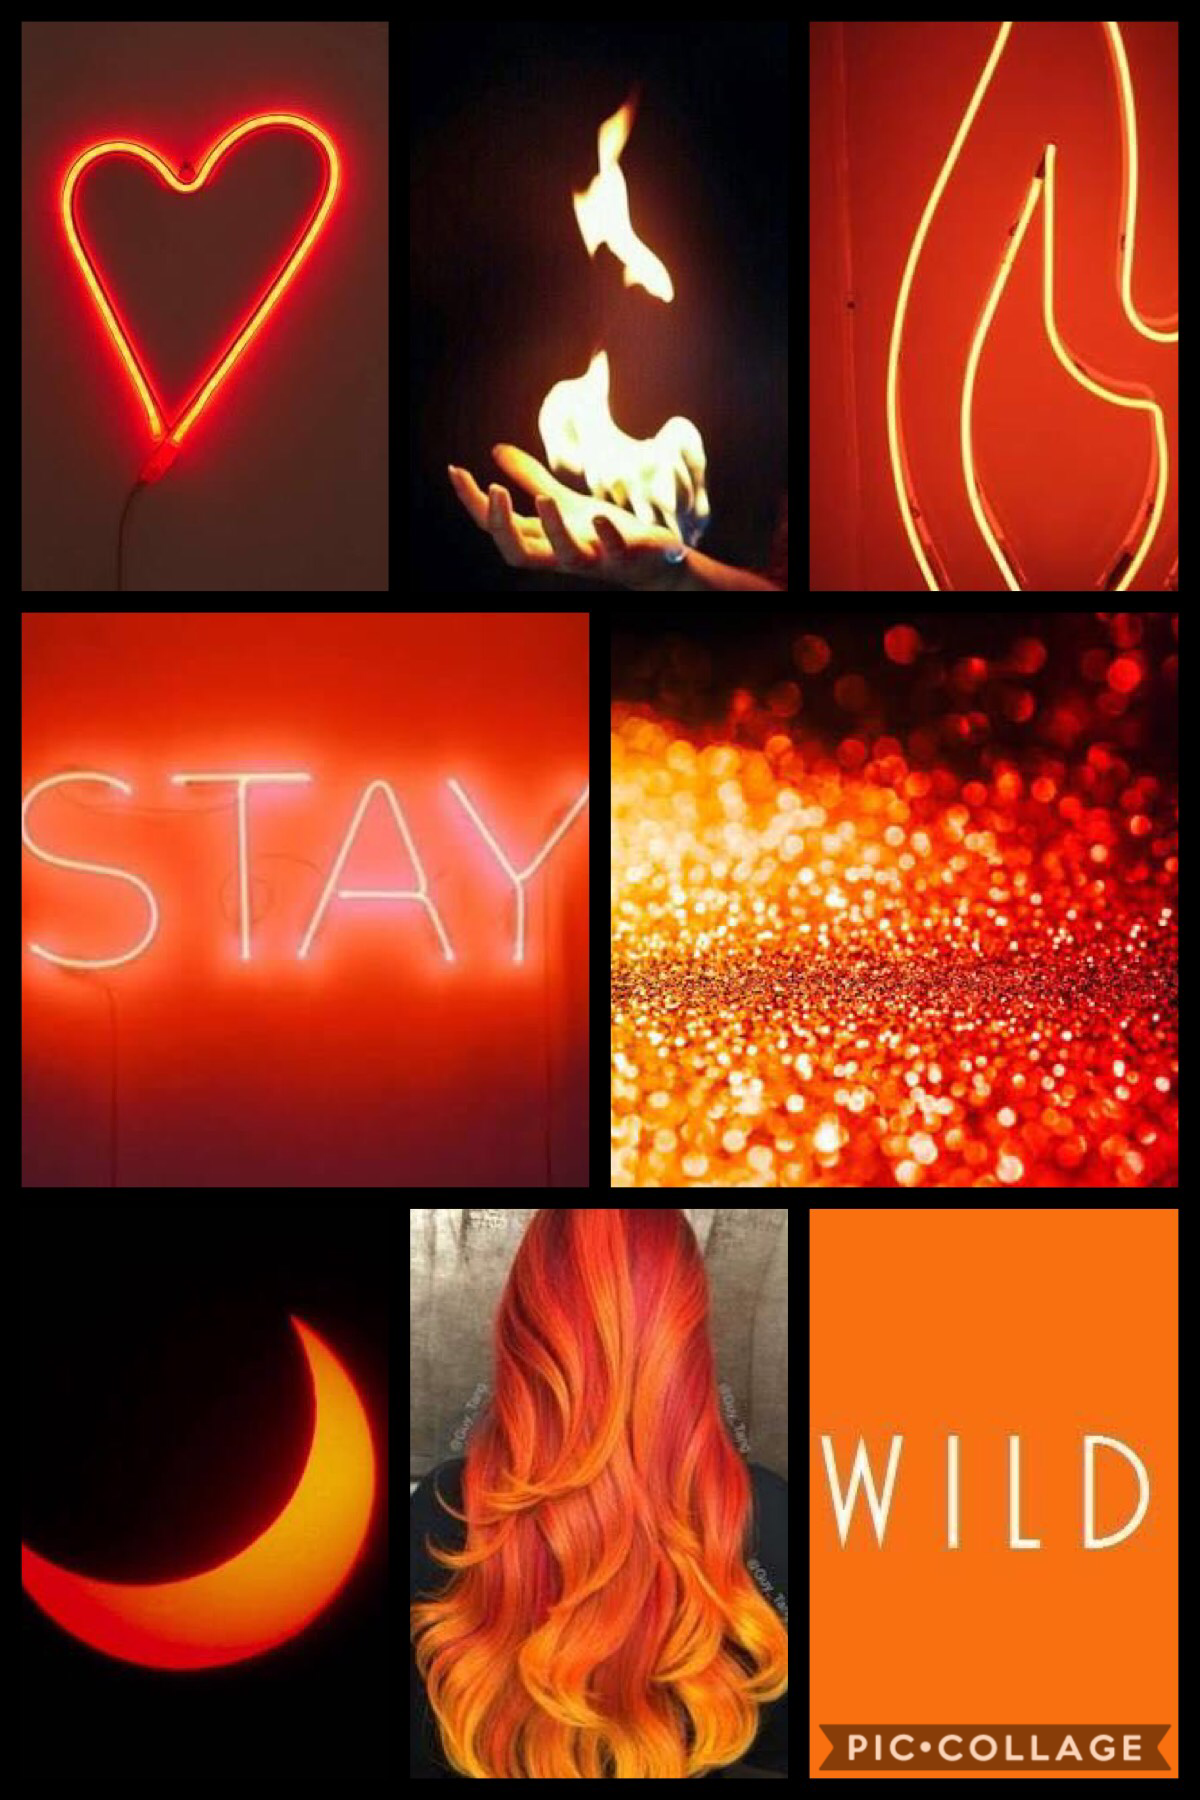 Just an orange aesthetic of my OC blaze.